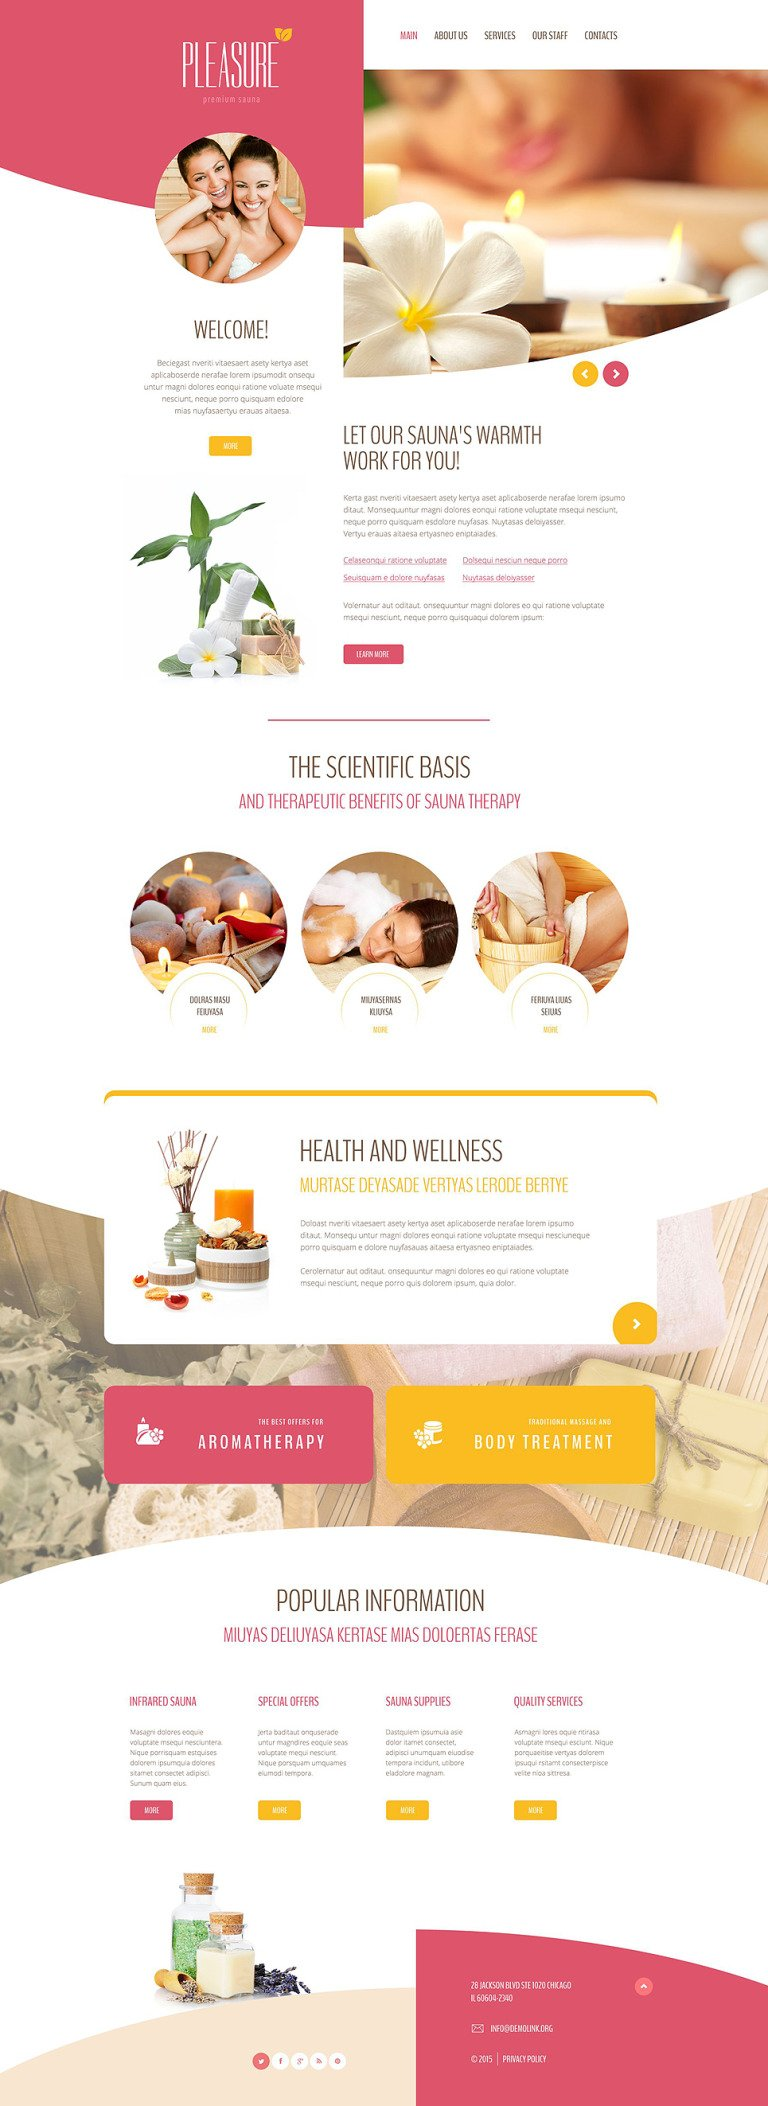 Pleasure Website Template New Screenshots BIG